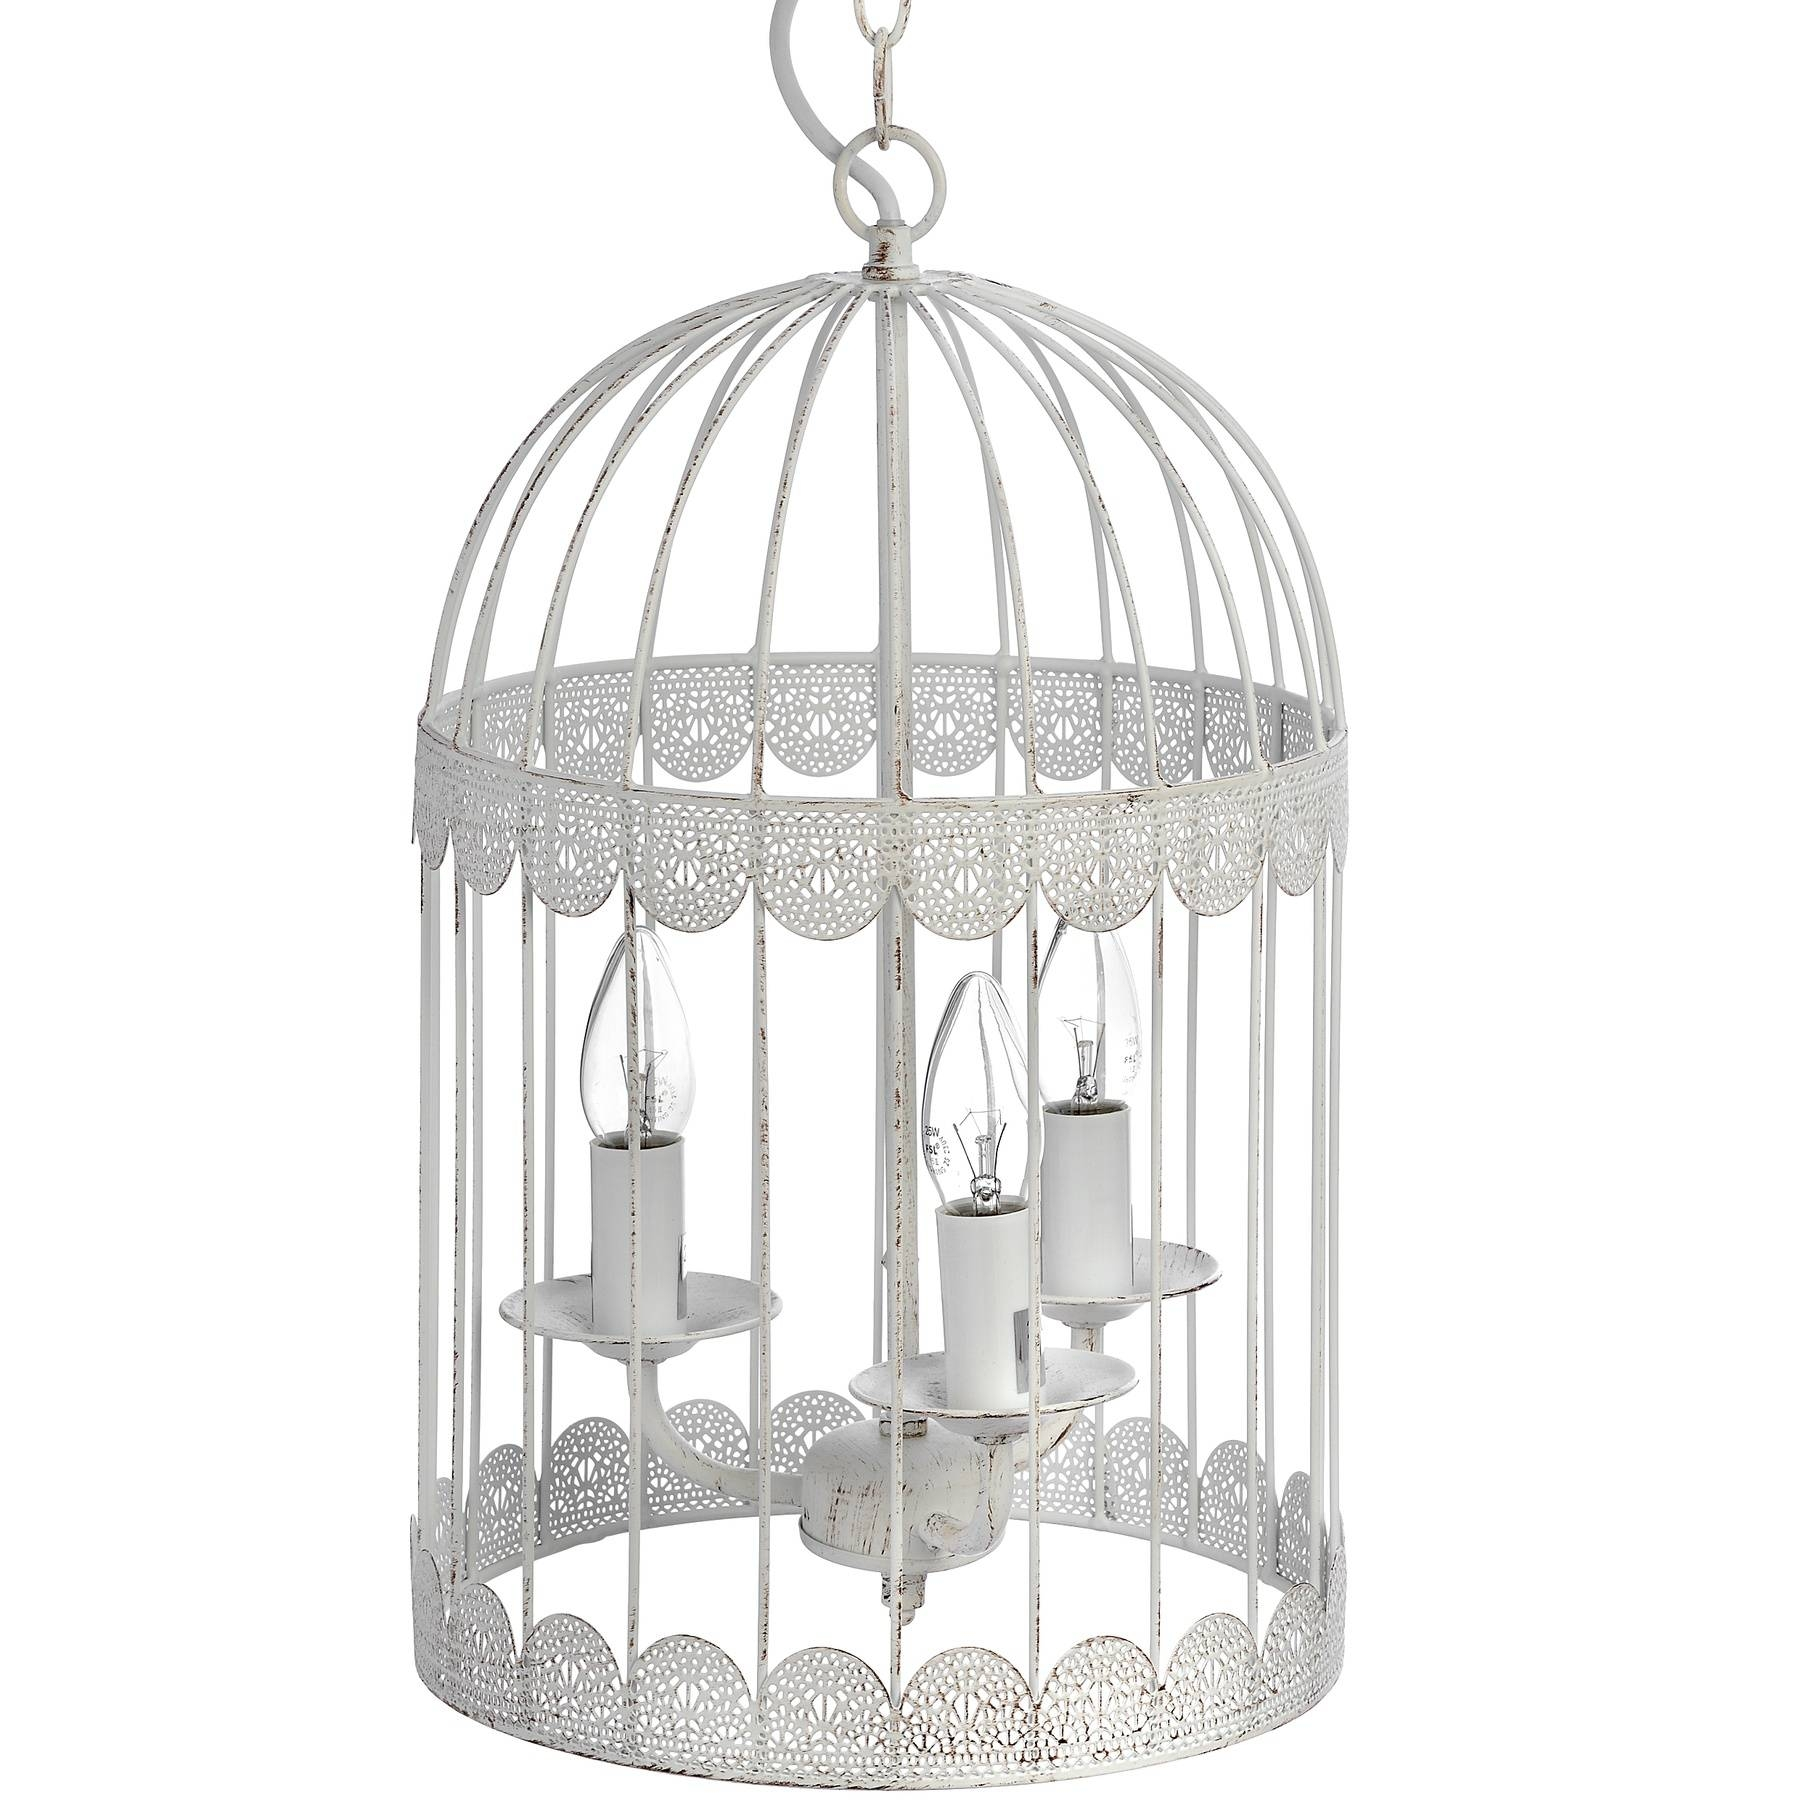 Birdcage Chandelier within Birdcage Lights Fixtures (Image 11 of 15)